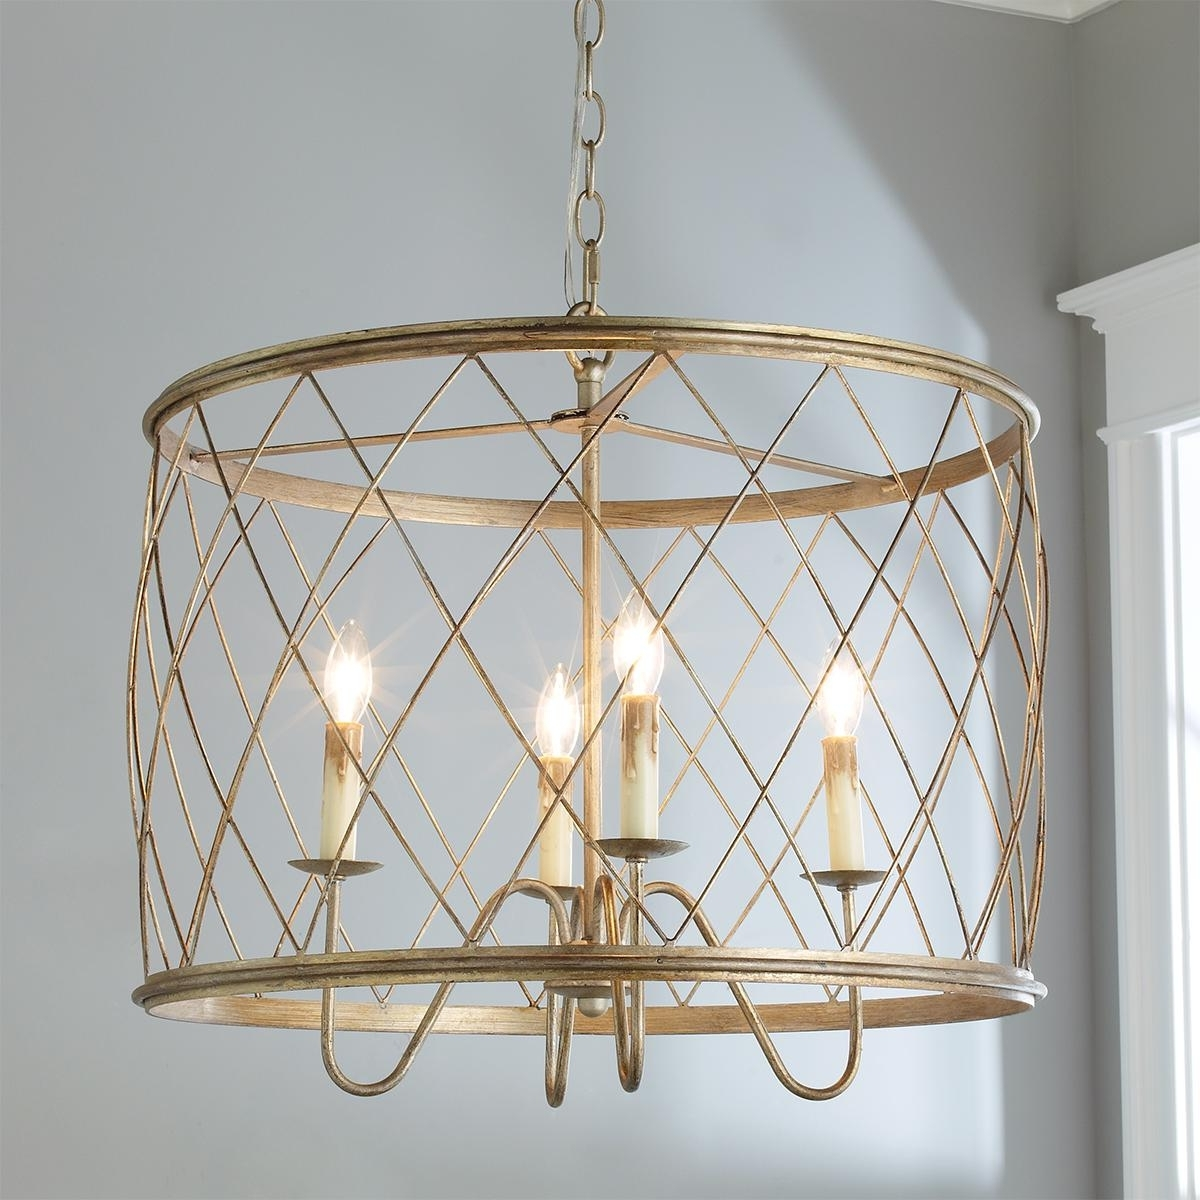 Well Liked Interior: Cage Chandelier For Unique Interior Lighting Design Ideas Within Caged Chandelier (View 20 of 20)